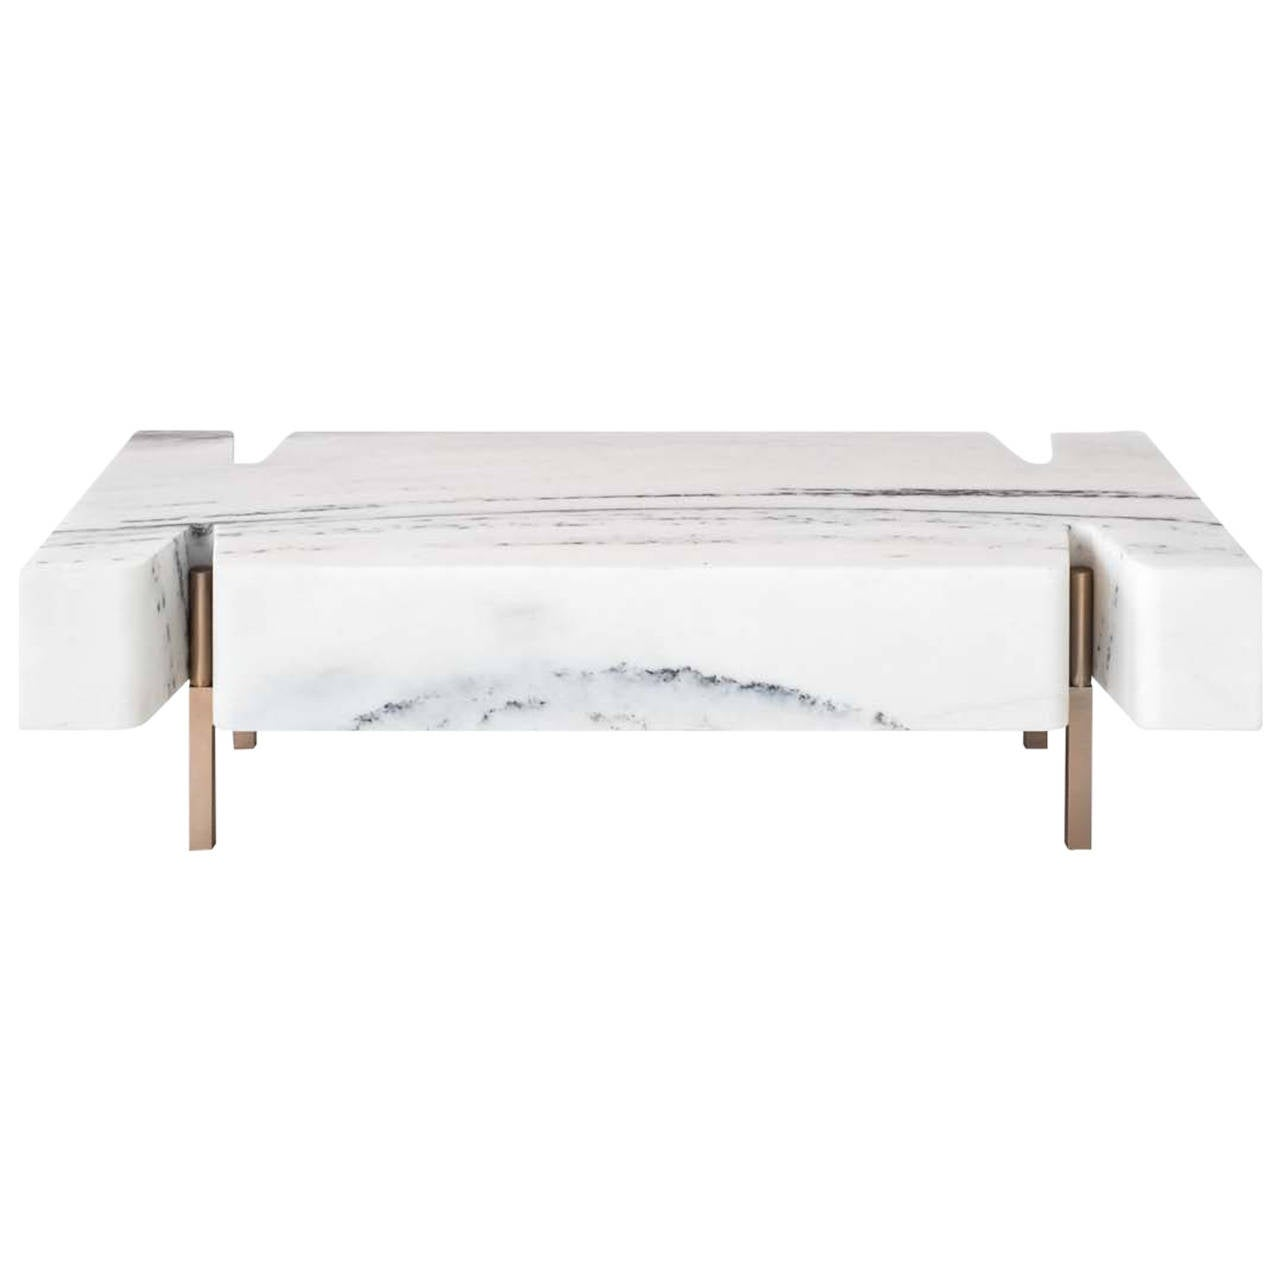 Terranova Coffee Table Or Cocktail Table With Hewn Marble Top And Bronze Base For Sale At 1stdibs